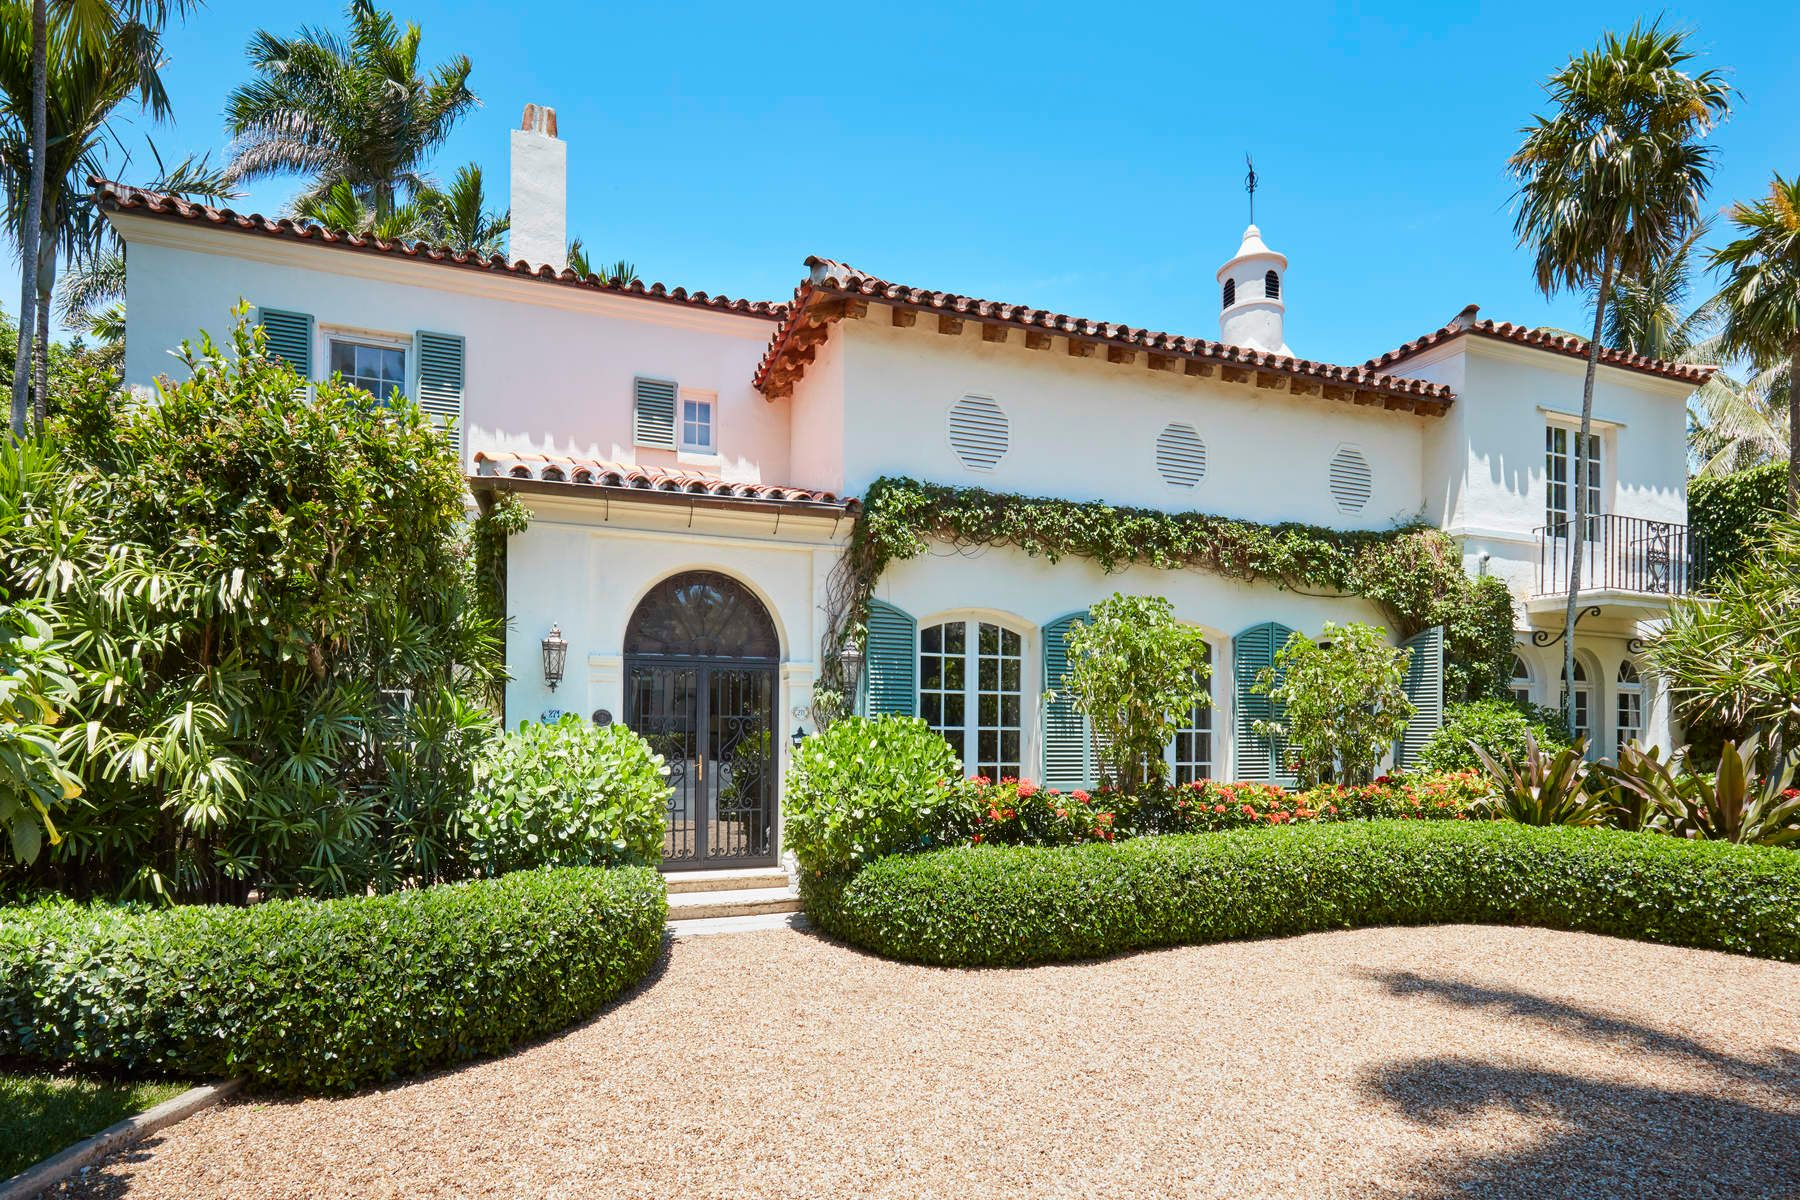 Single Family Home for Sale at Gracious Landmarked Estate 271 El Vedado Rd Palm Beach, Florida 33480 United States